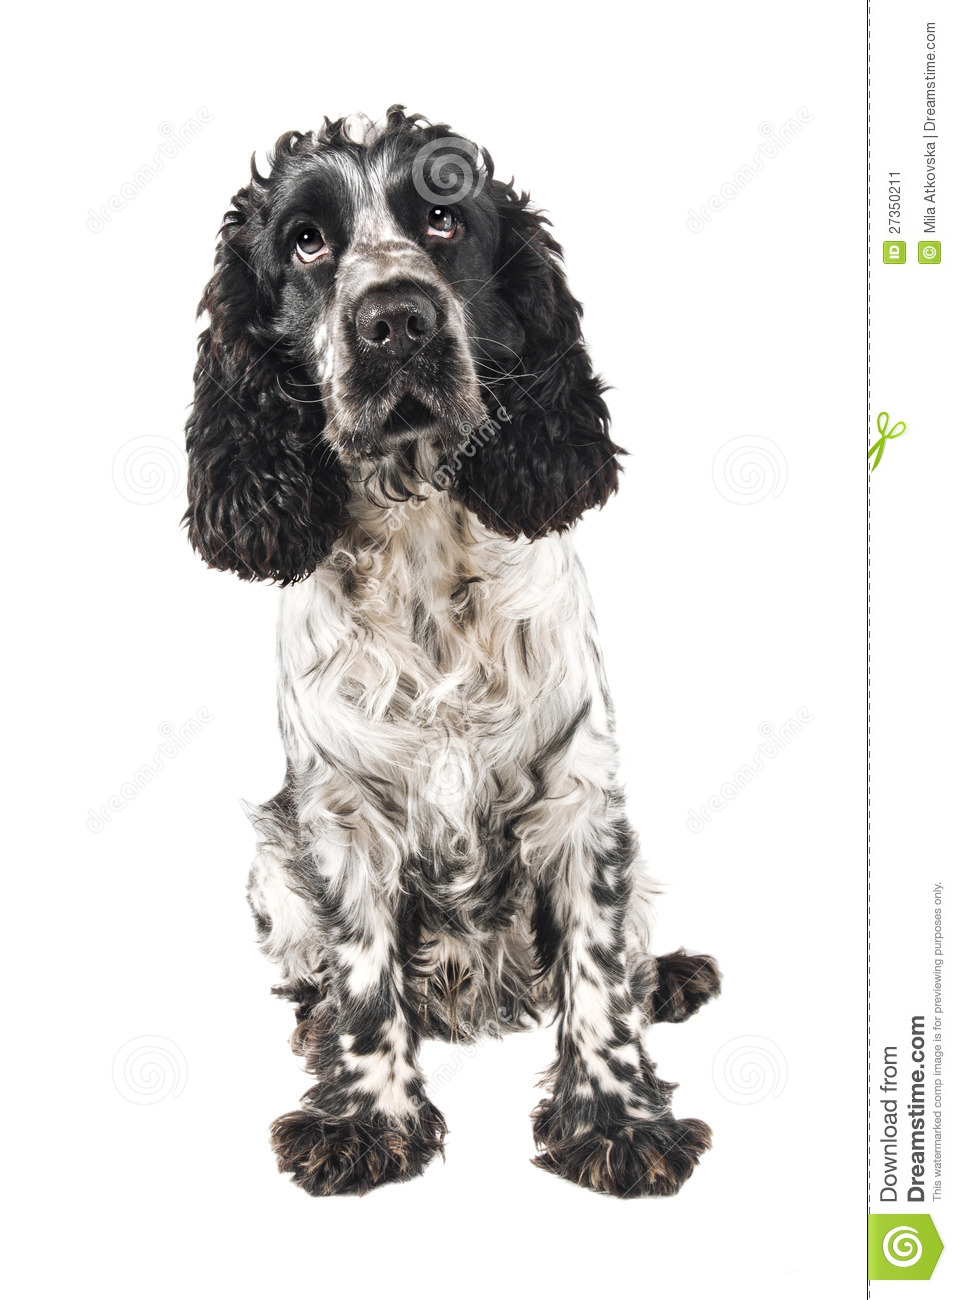 Black And White English Cocker Spaniel Looking Up Stock Image  Image: 27350211 - Eiffel Tower Floor Plan